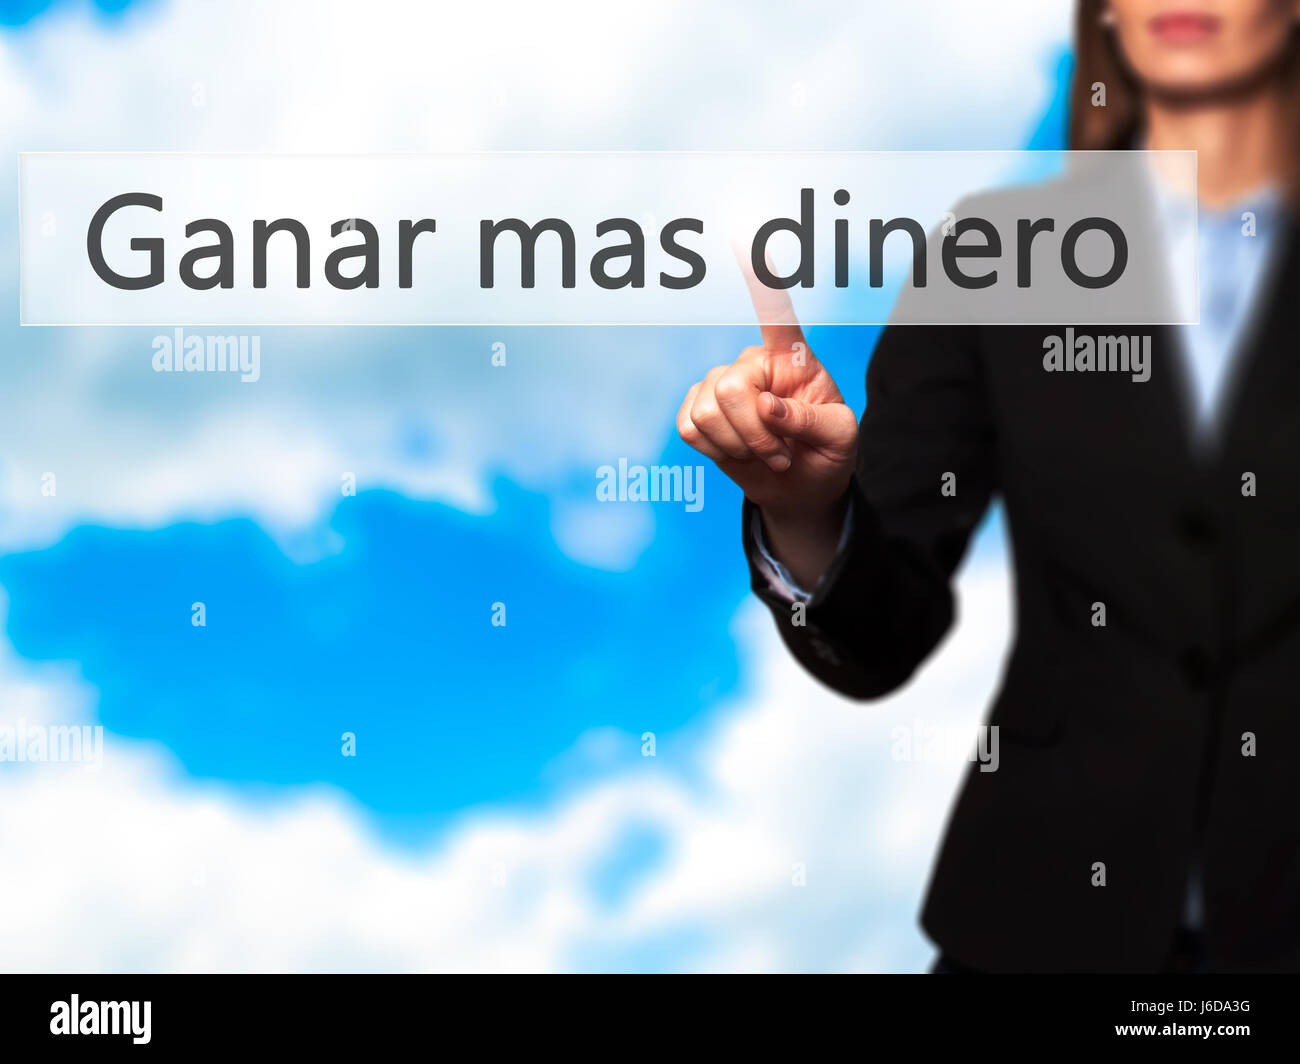 Ganar Mas Dinero (Make More Money in Spanish)  - Businesswoman hand pressing button on touch screen interface. Business, - Stock Image